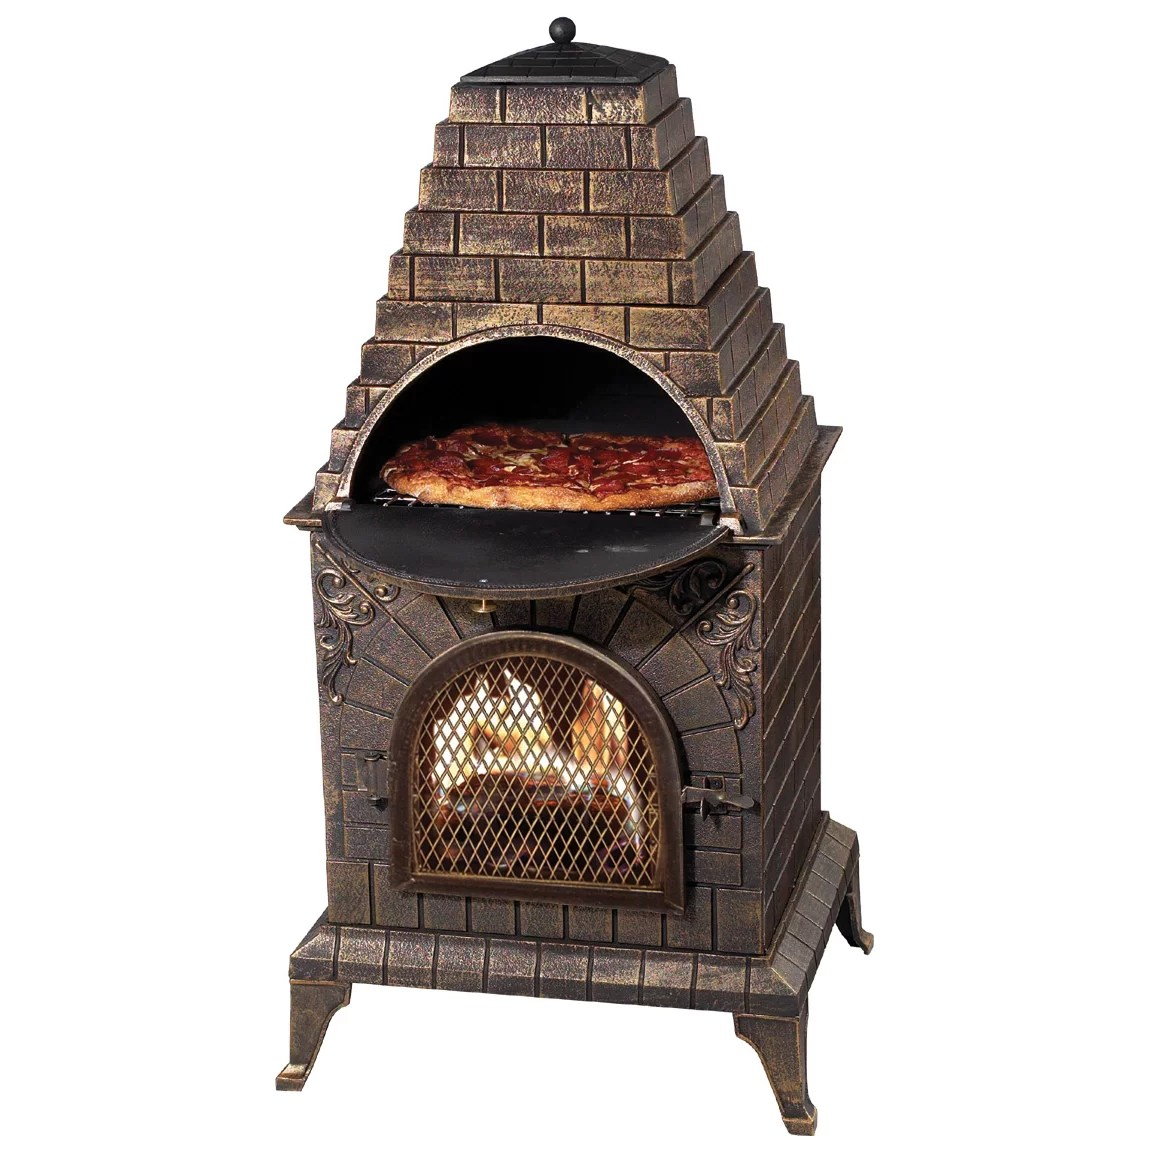 Outdoor Pizza Oven Fireplace Chiminea Wood Burning BBQ ... on Outdoor Patio With Pizza Oven  id=48132